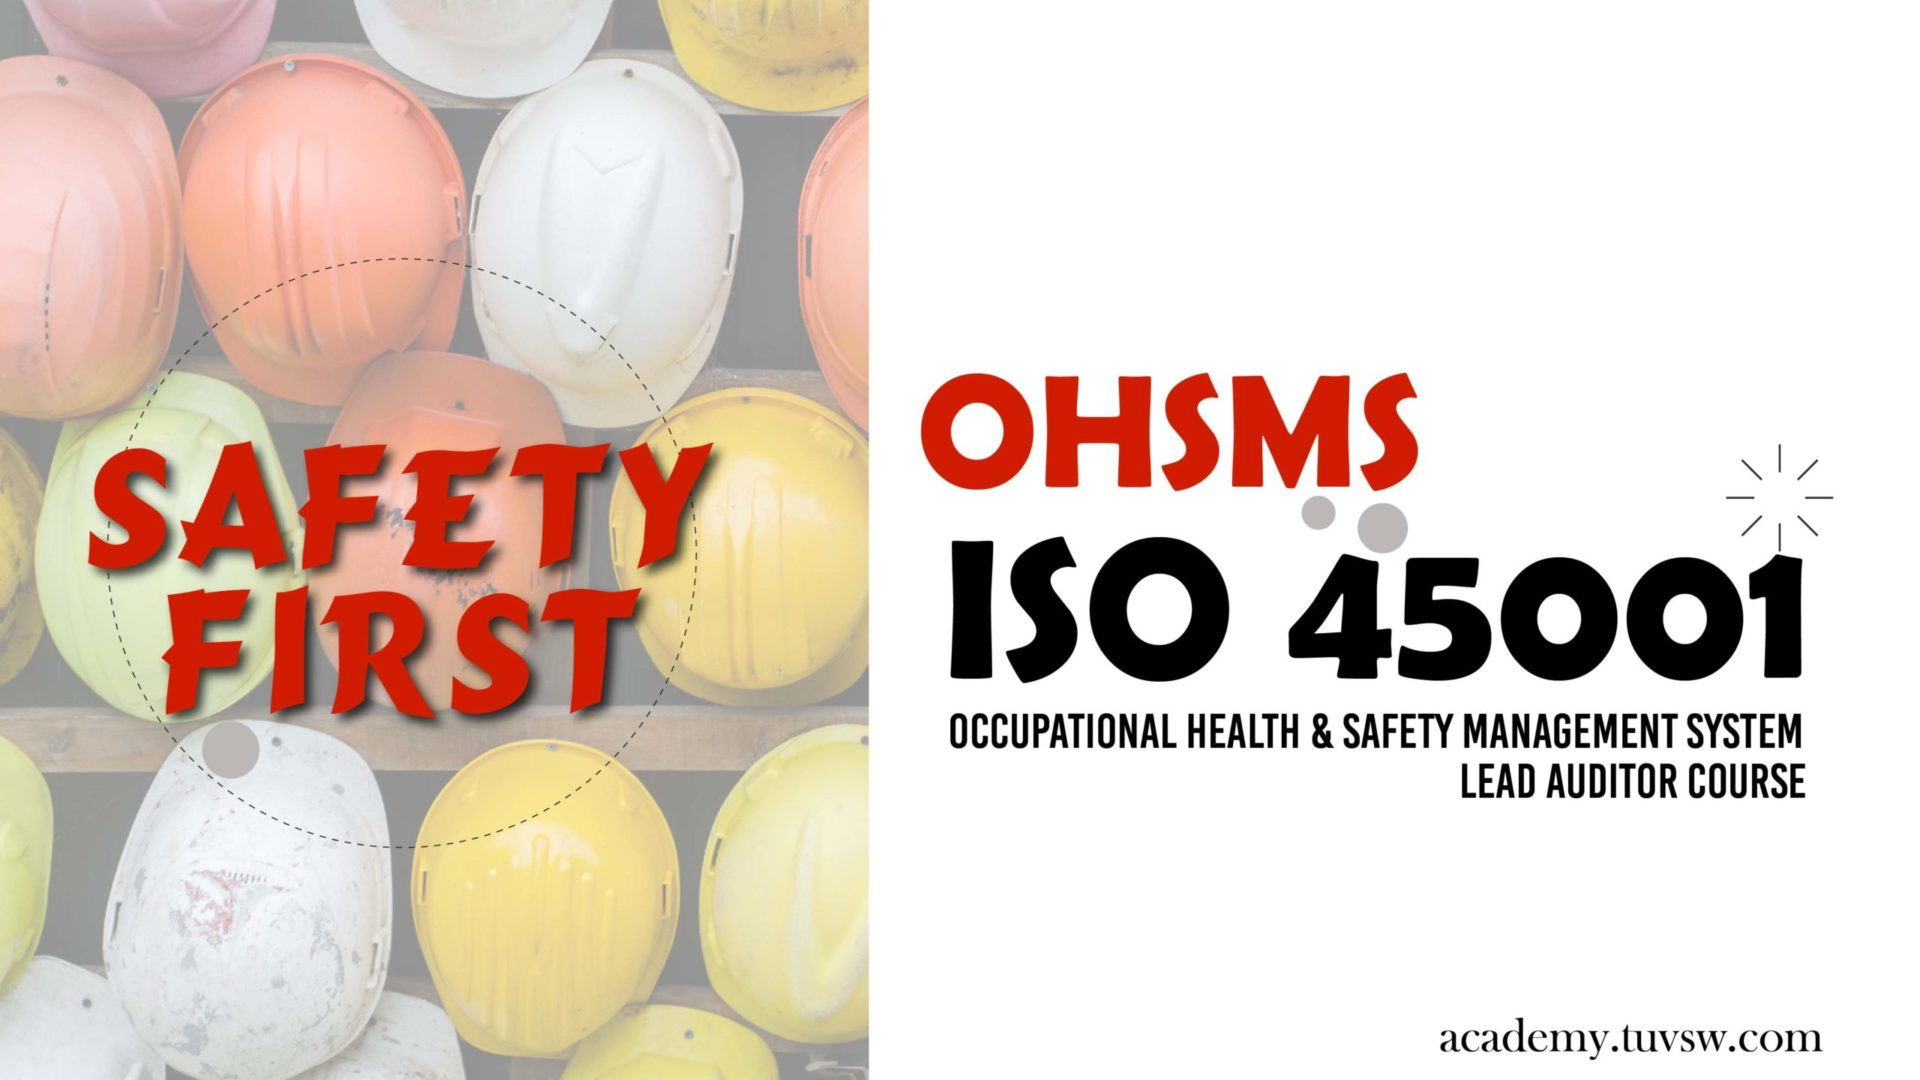 ISO 45001:2018 (OHSMS) Lead Auditor Training Course